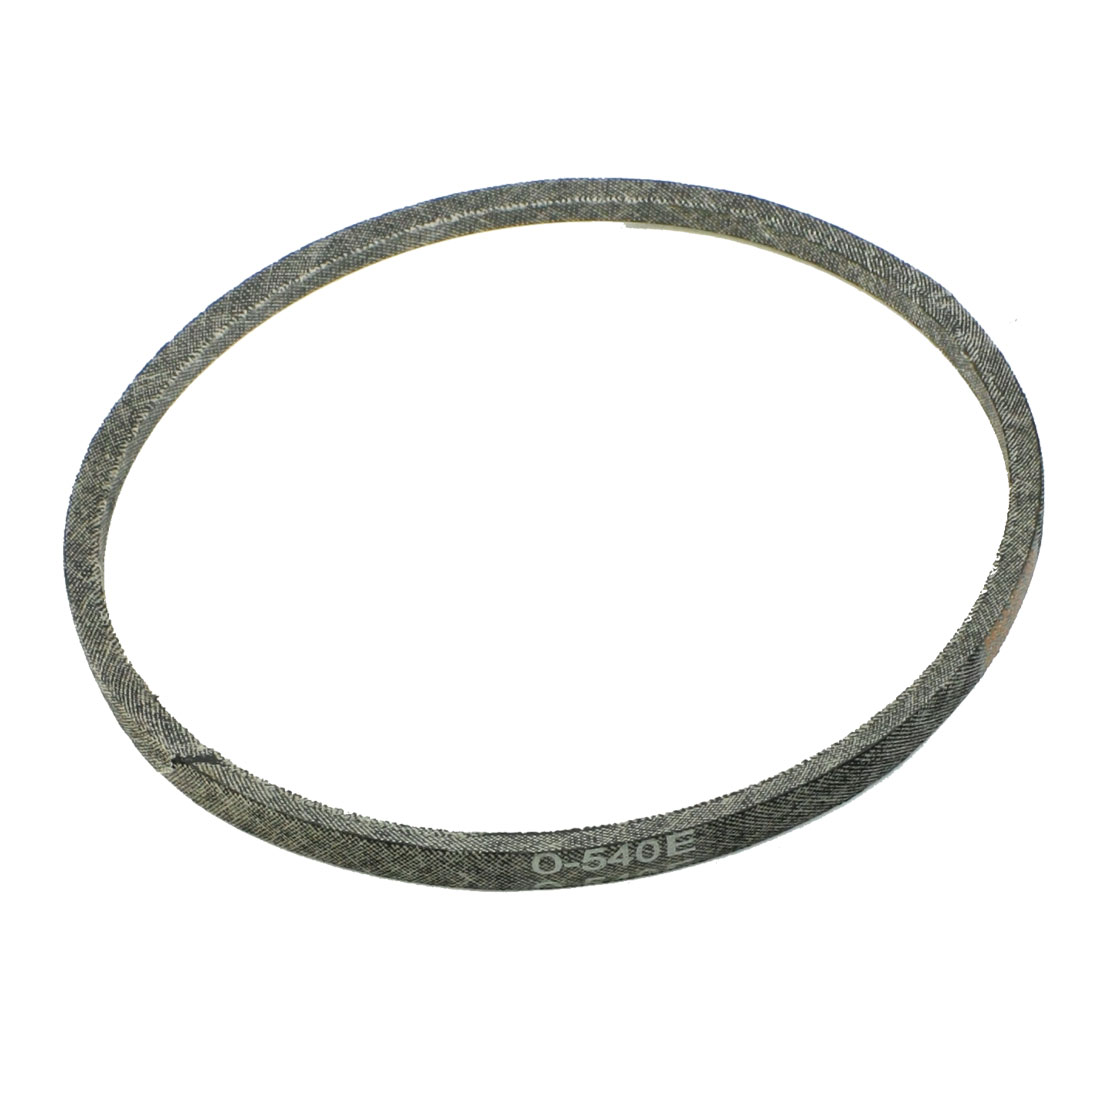 "Washing Machine Motor V Belt Replacement 10mm Outer Width 21 17/64"" Inner Girth"